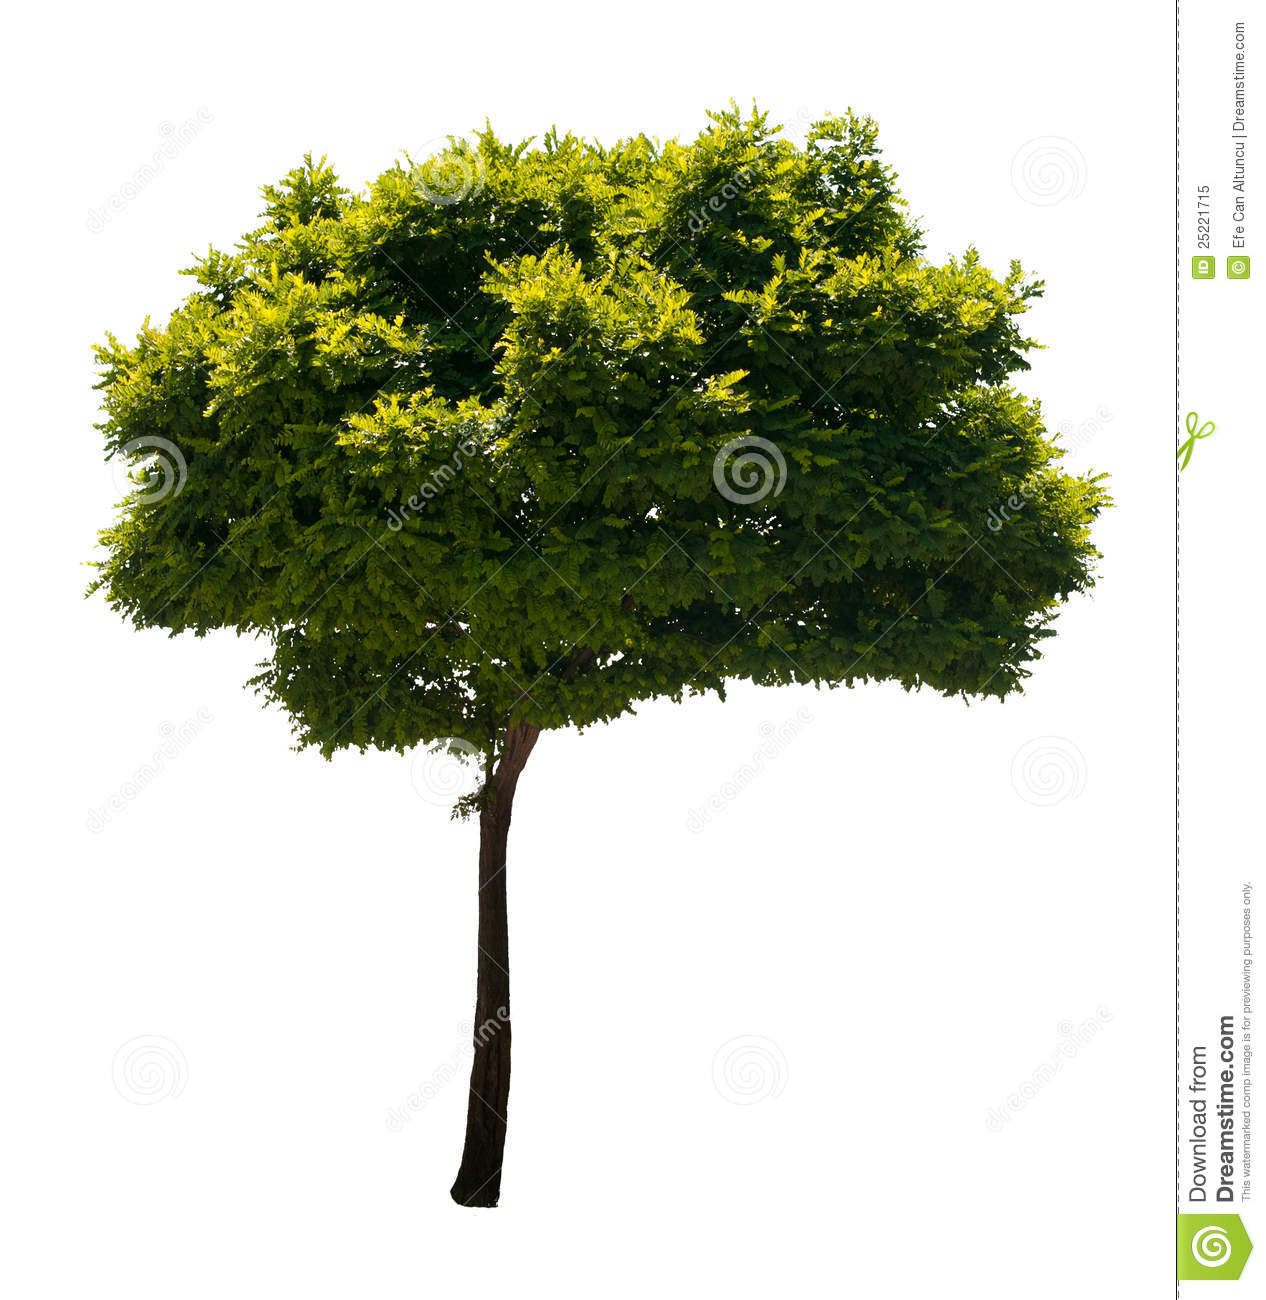 Isolated Tree stock image. Image of decoration, isolated.